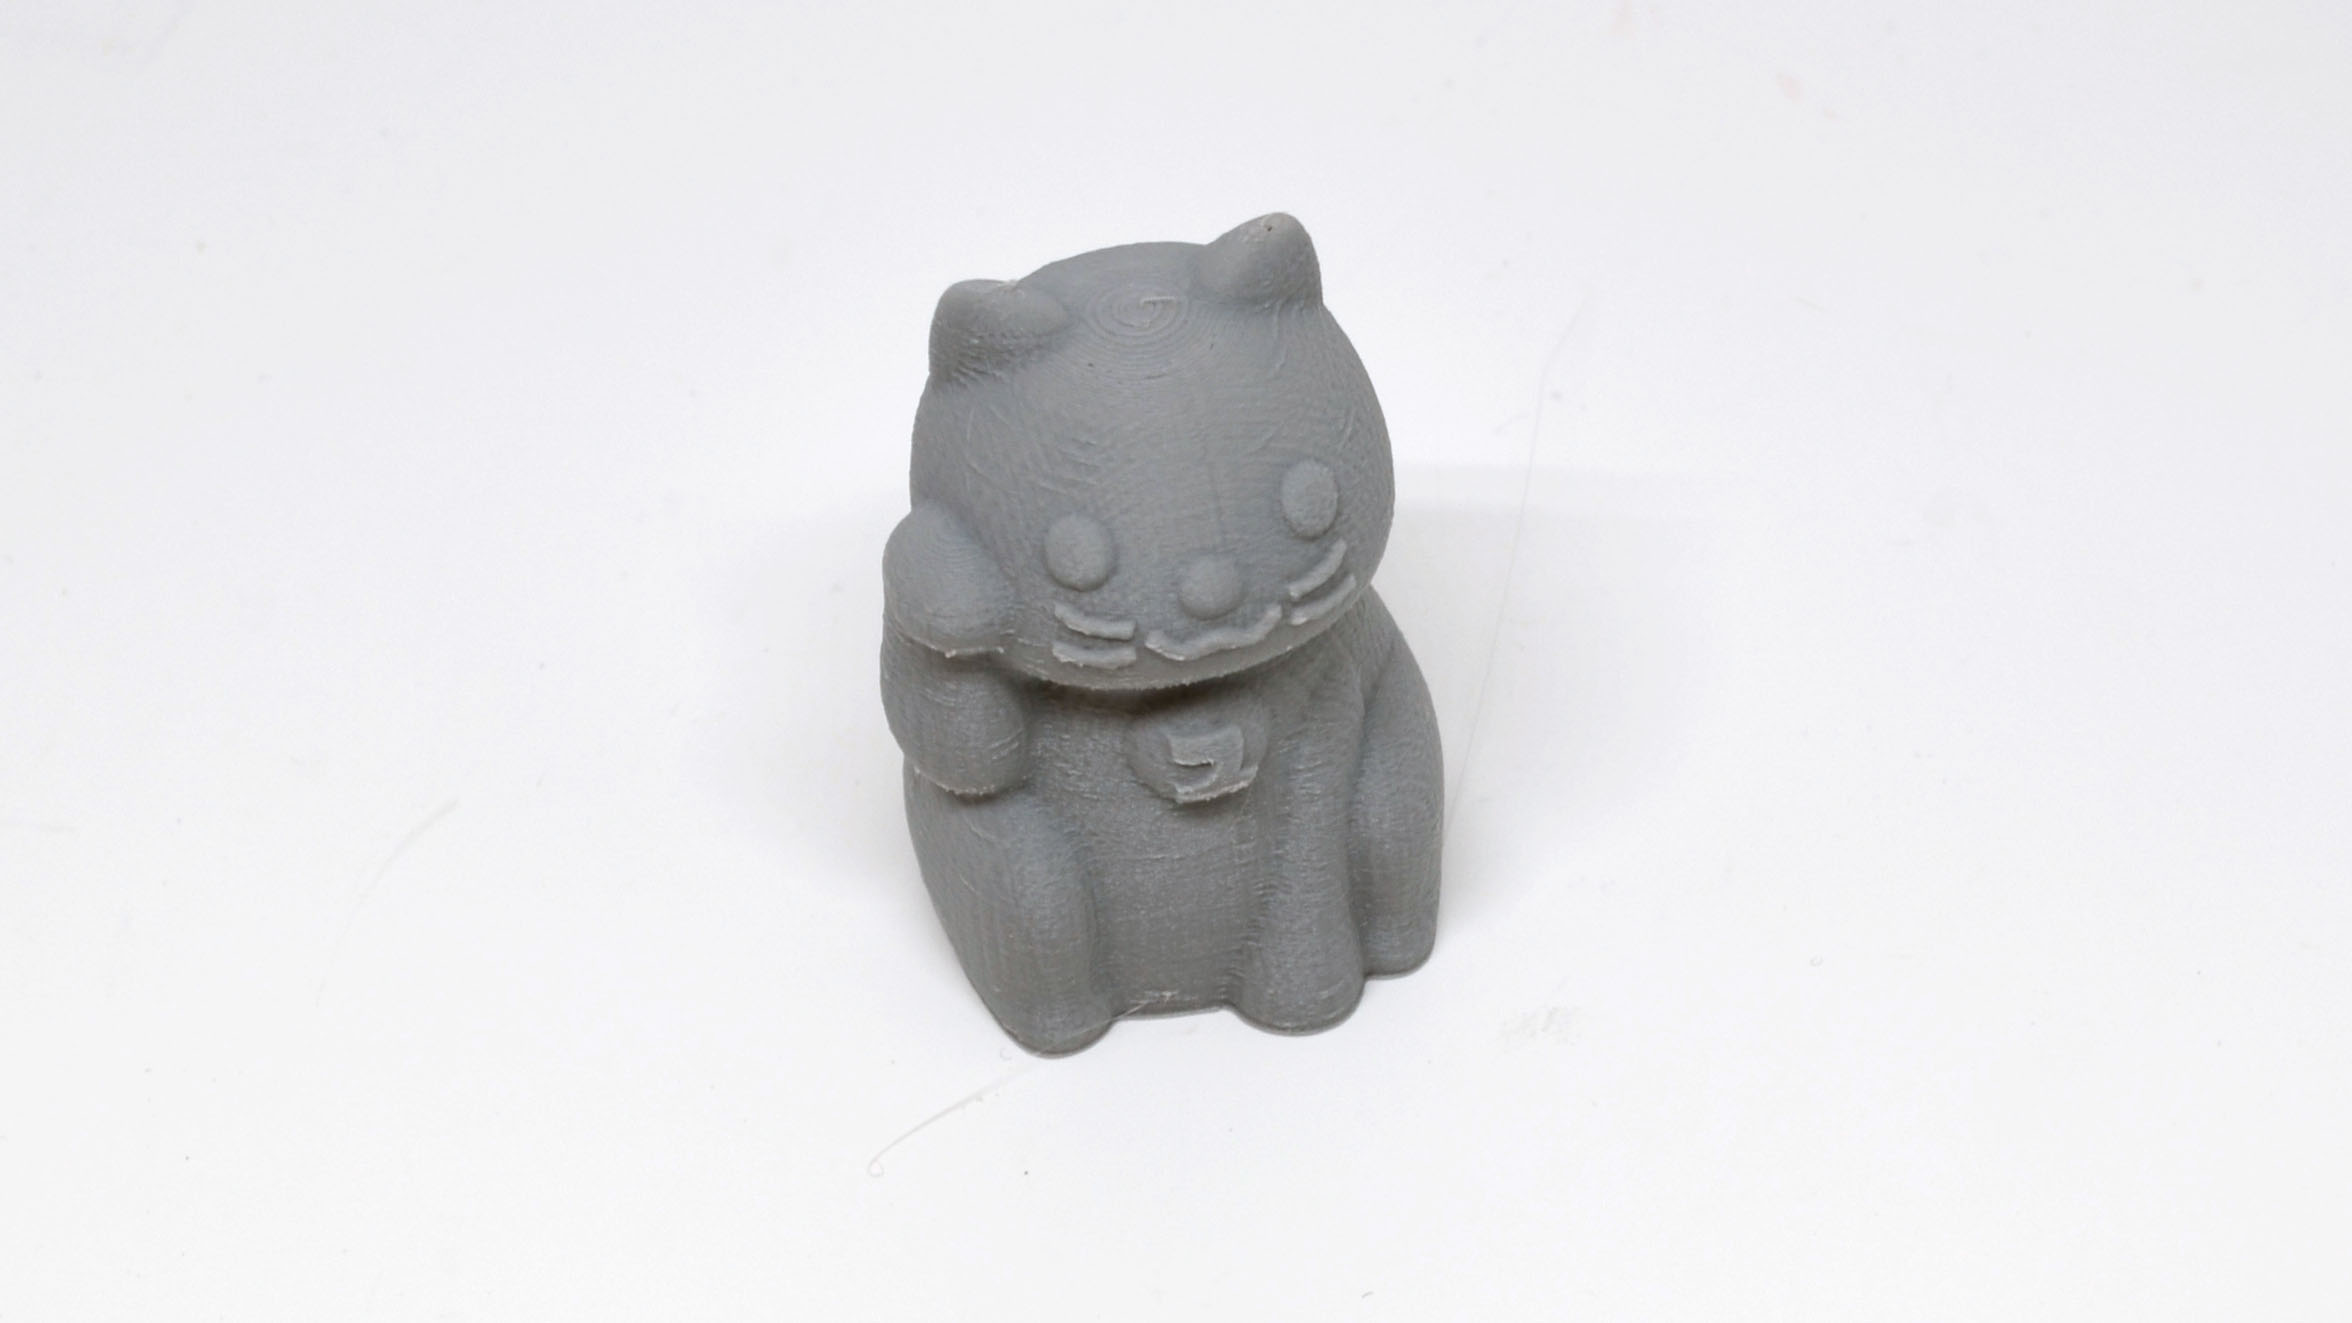 A closer look at the fortune cat.